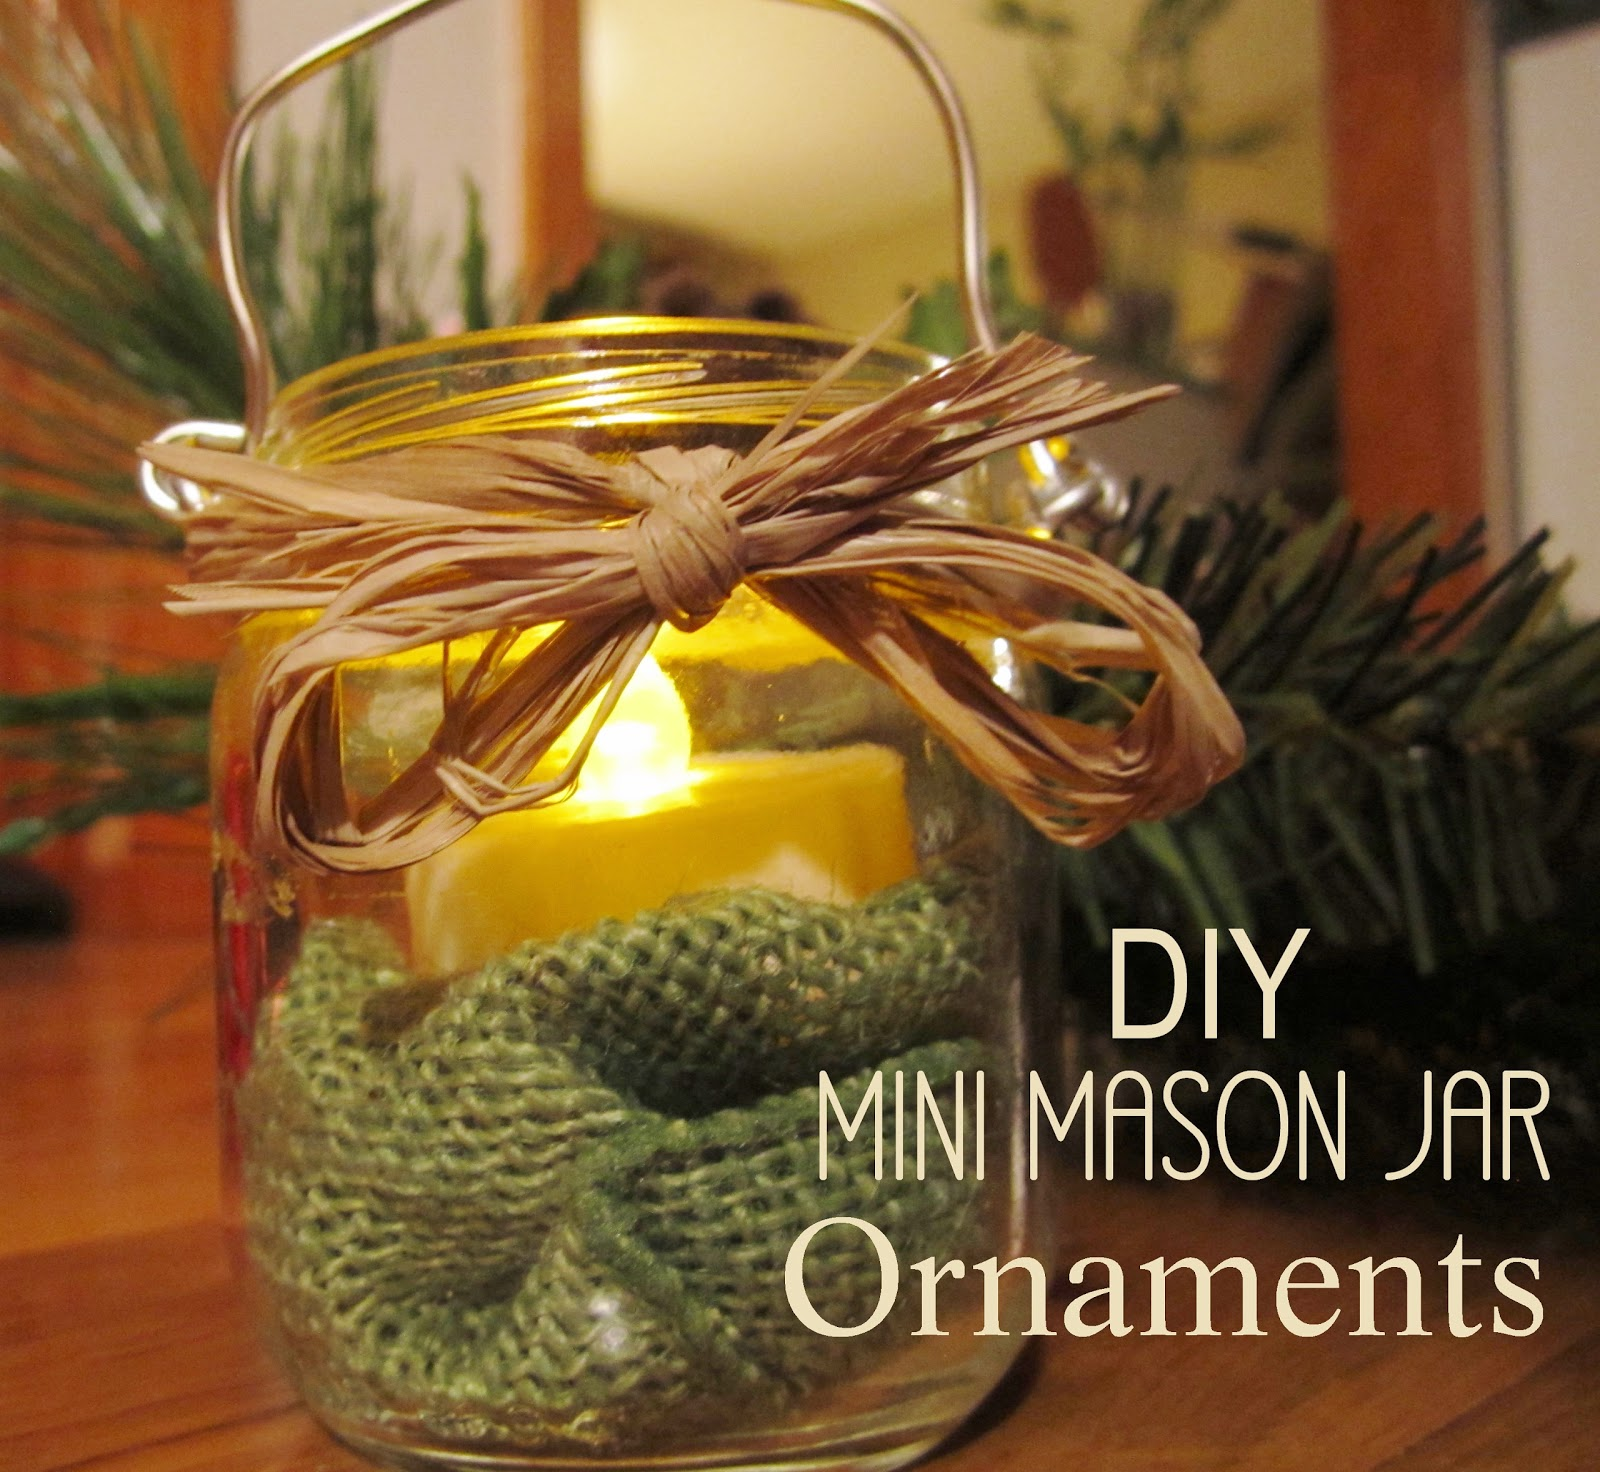 DIY mini mason jar ornaments